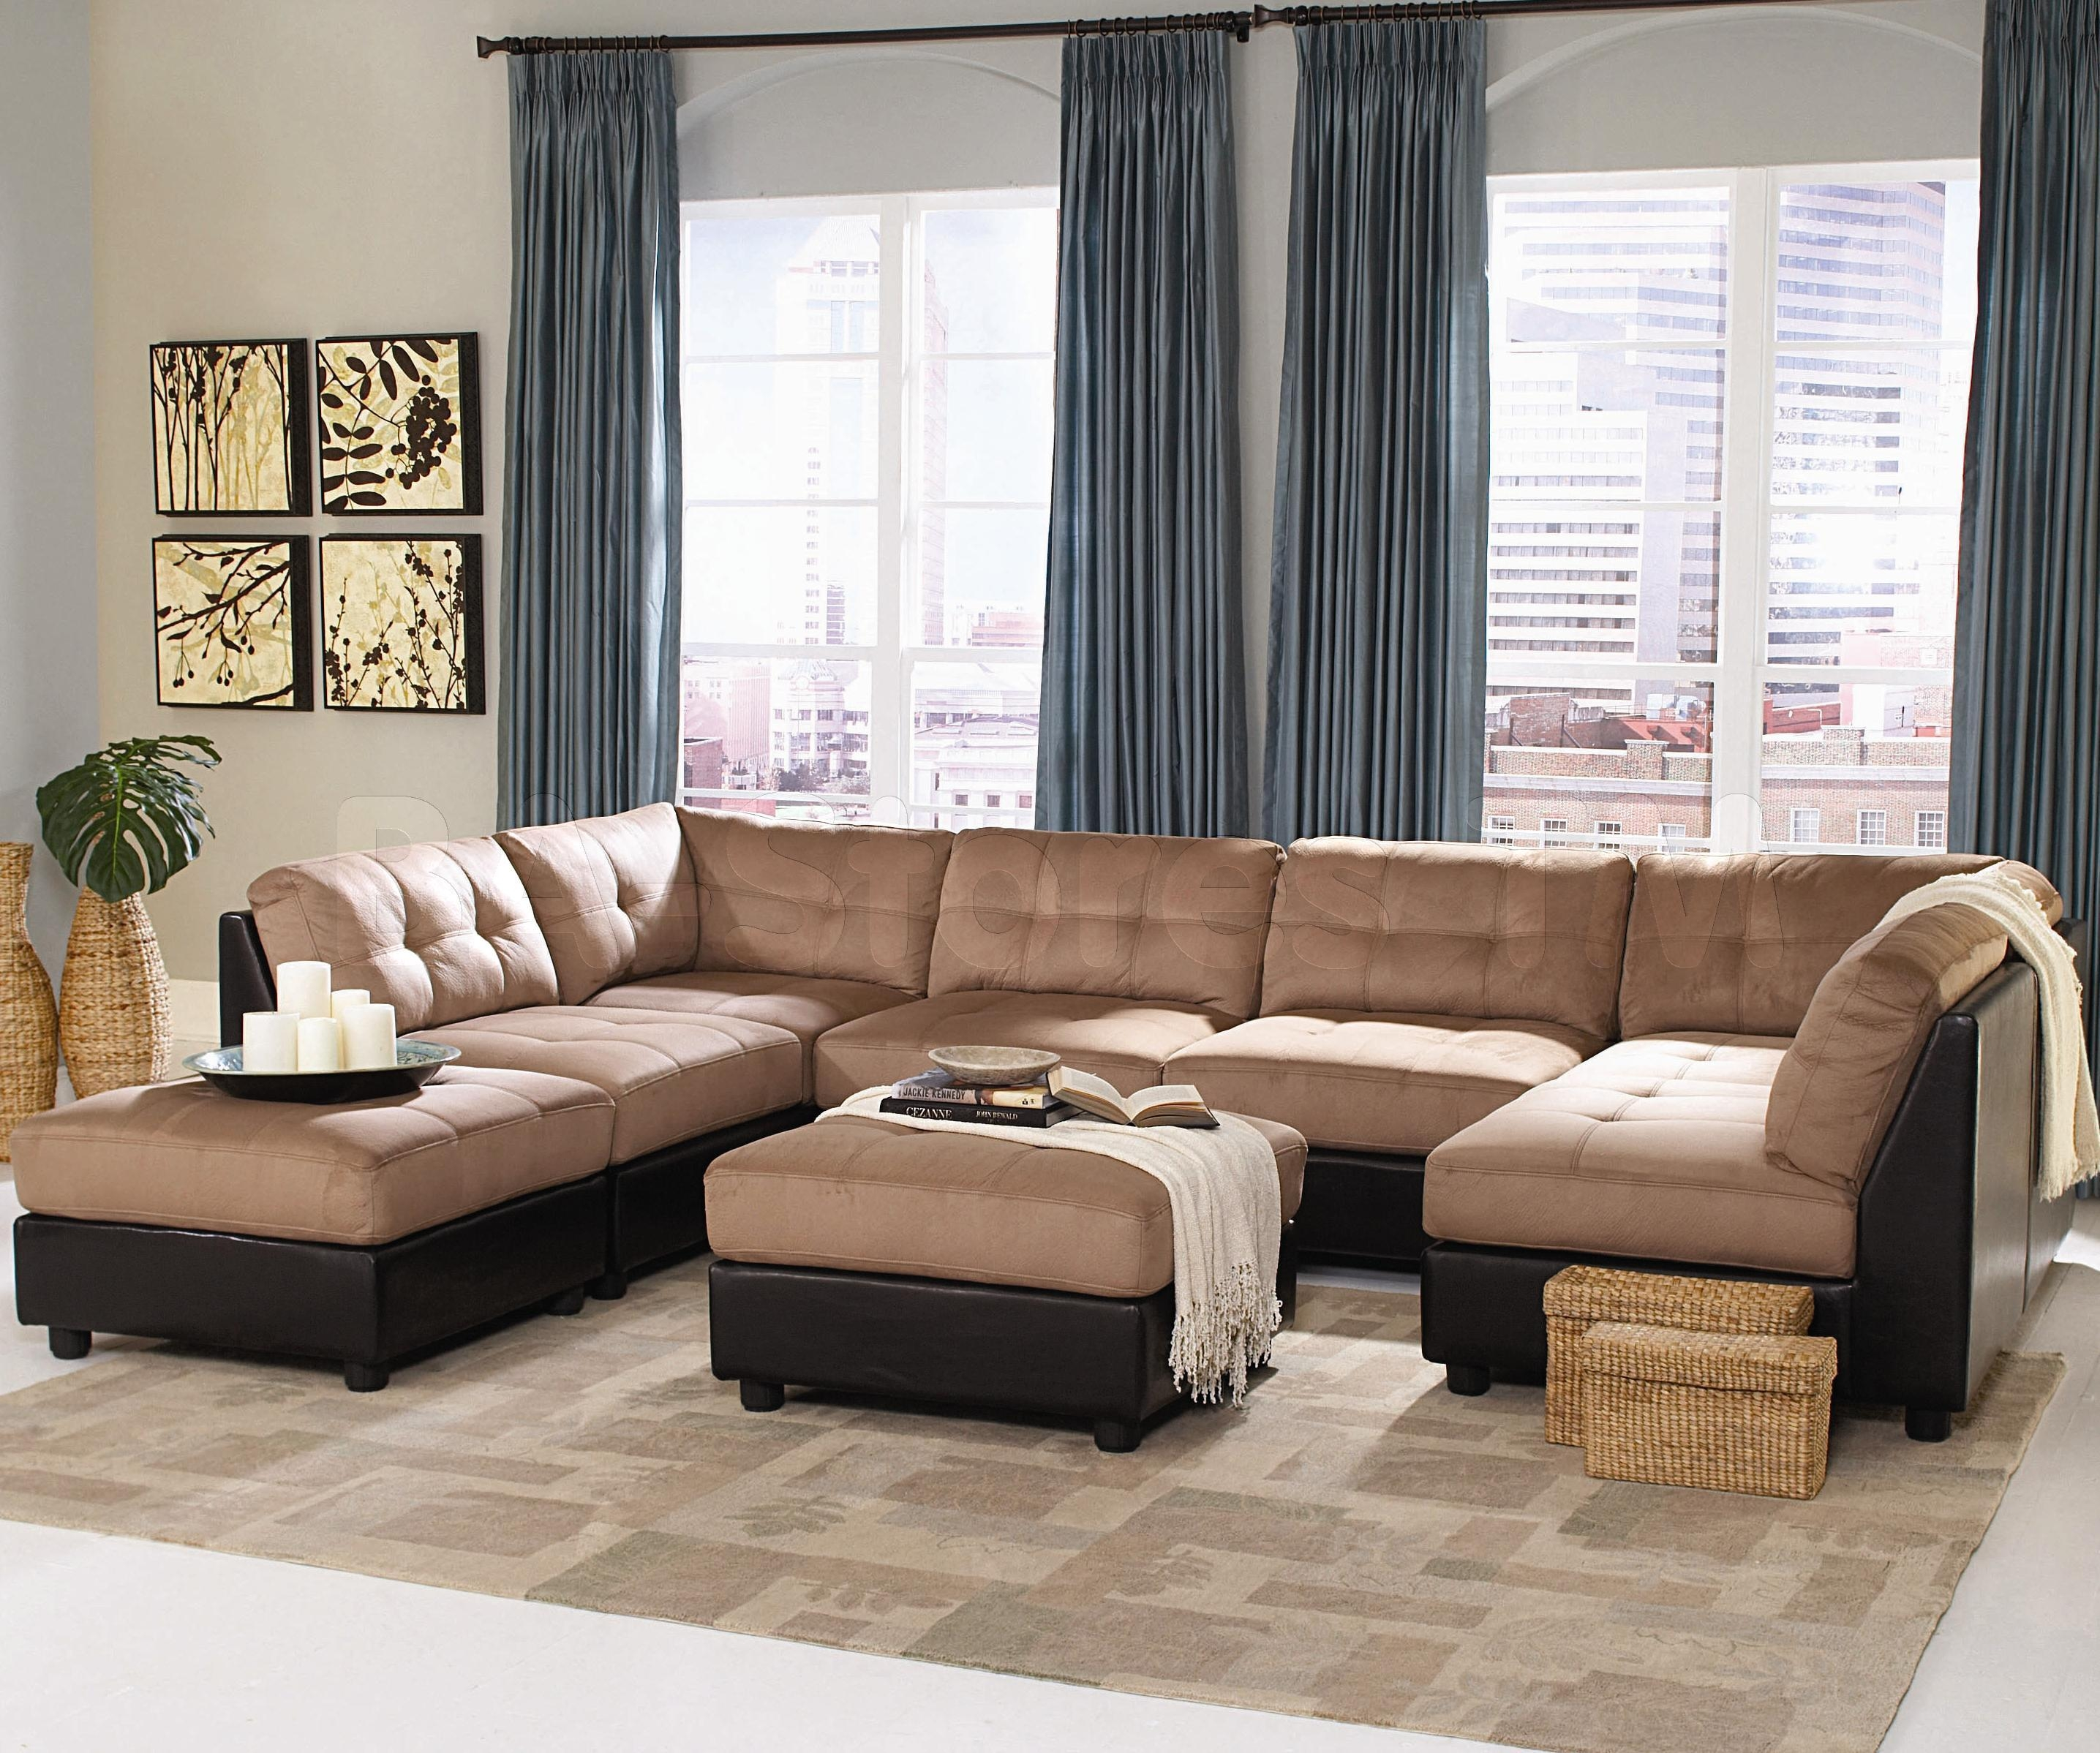 20 ideas of nice sectional couches